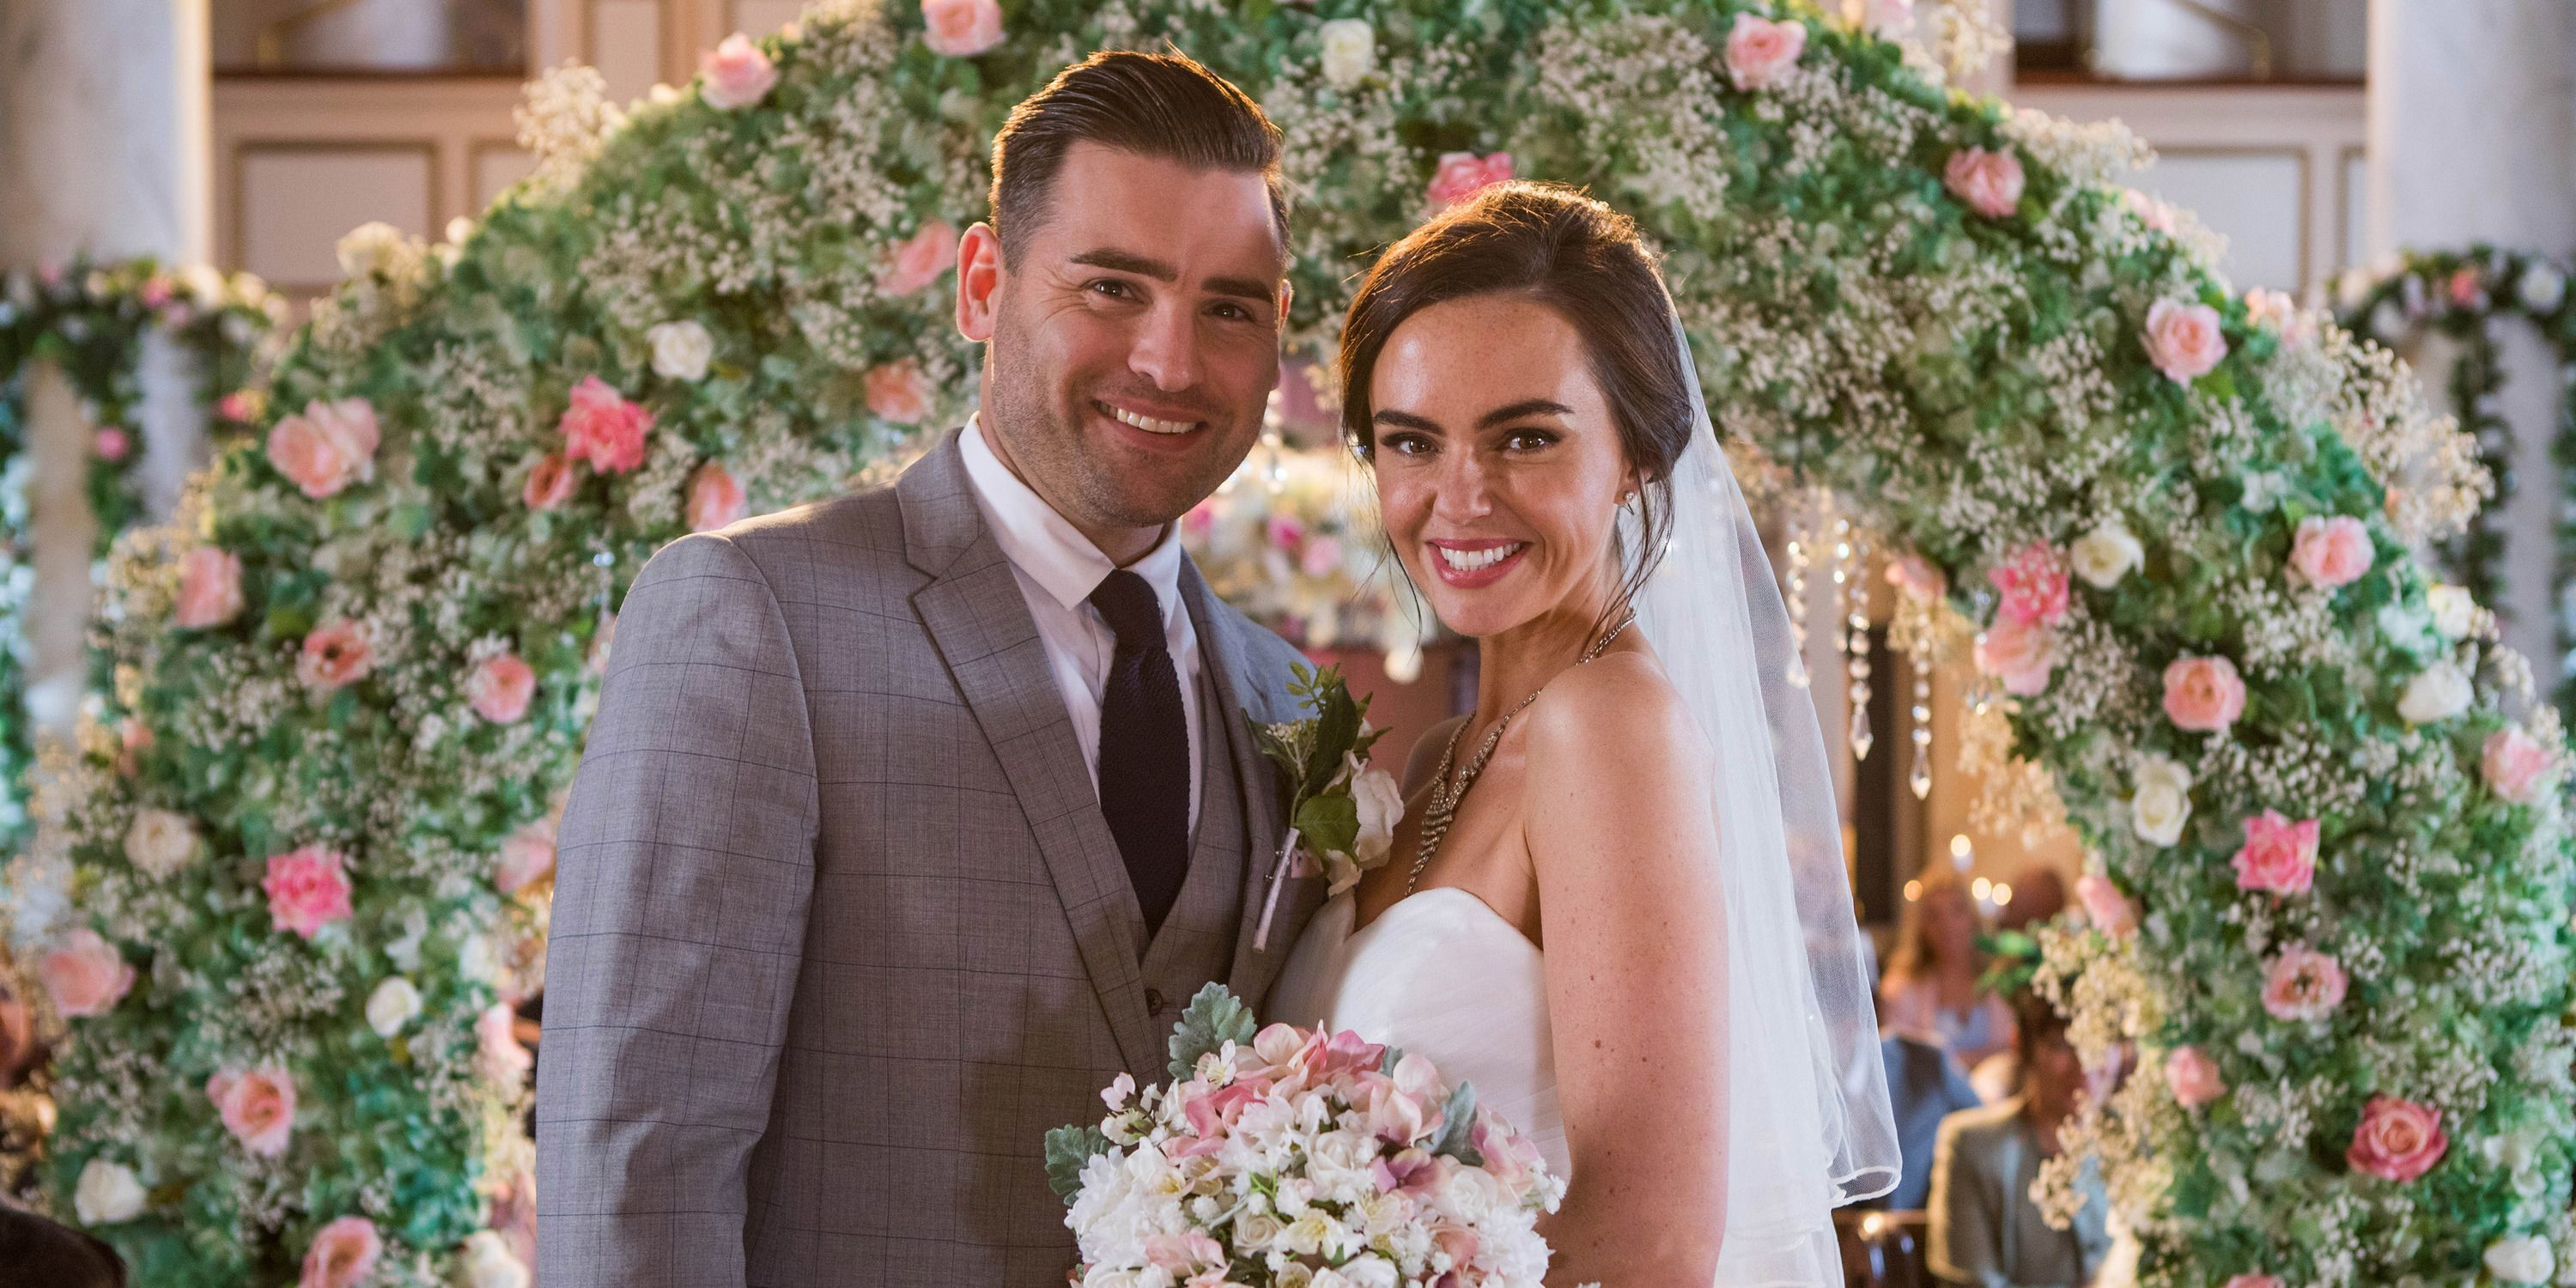 Russ Owen and Mercedes McQueen's wedding day in Hollyoaks